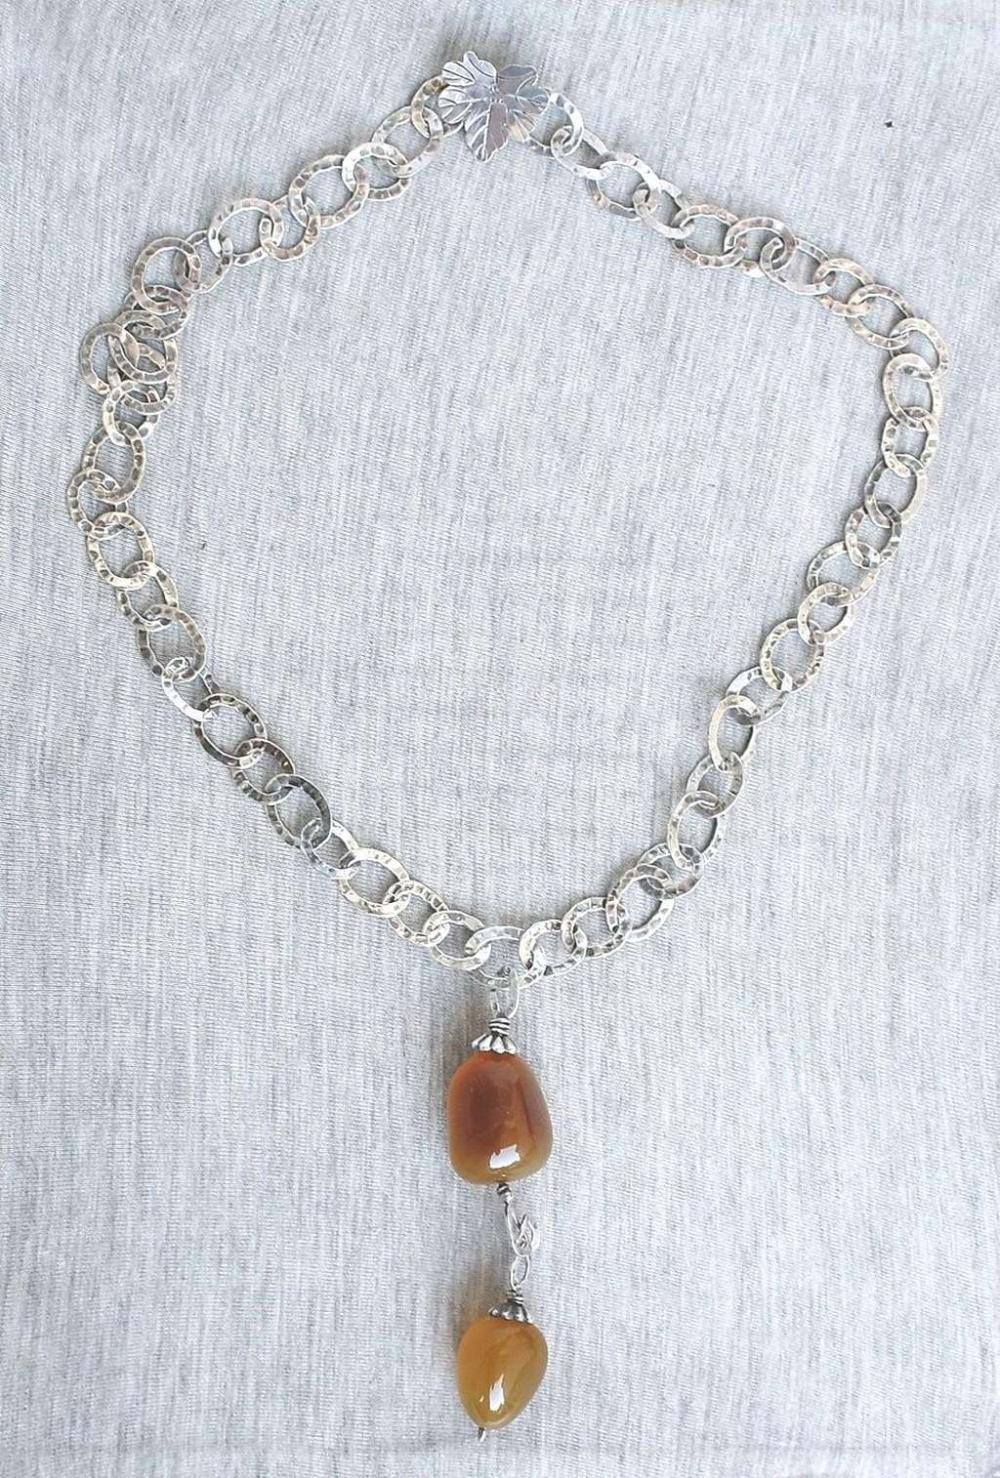 G.R.A.S. Vintage solid silver sterling 925 necklace with agate charm, 60gr.